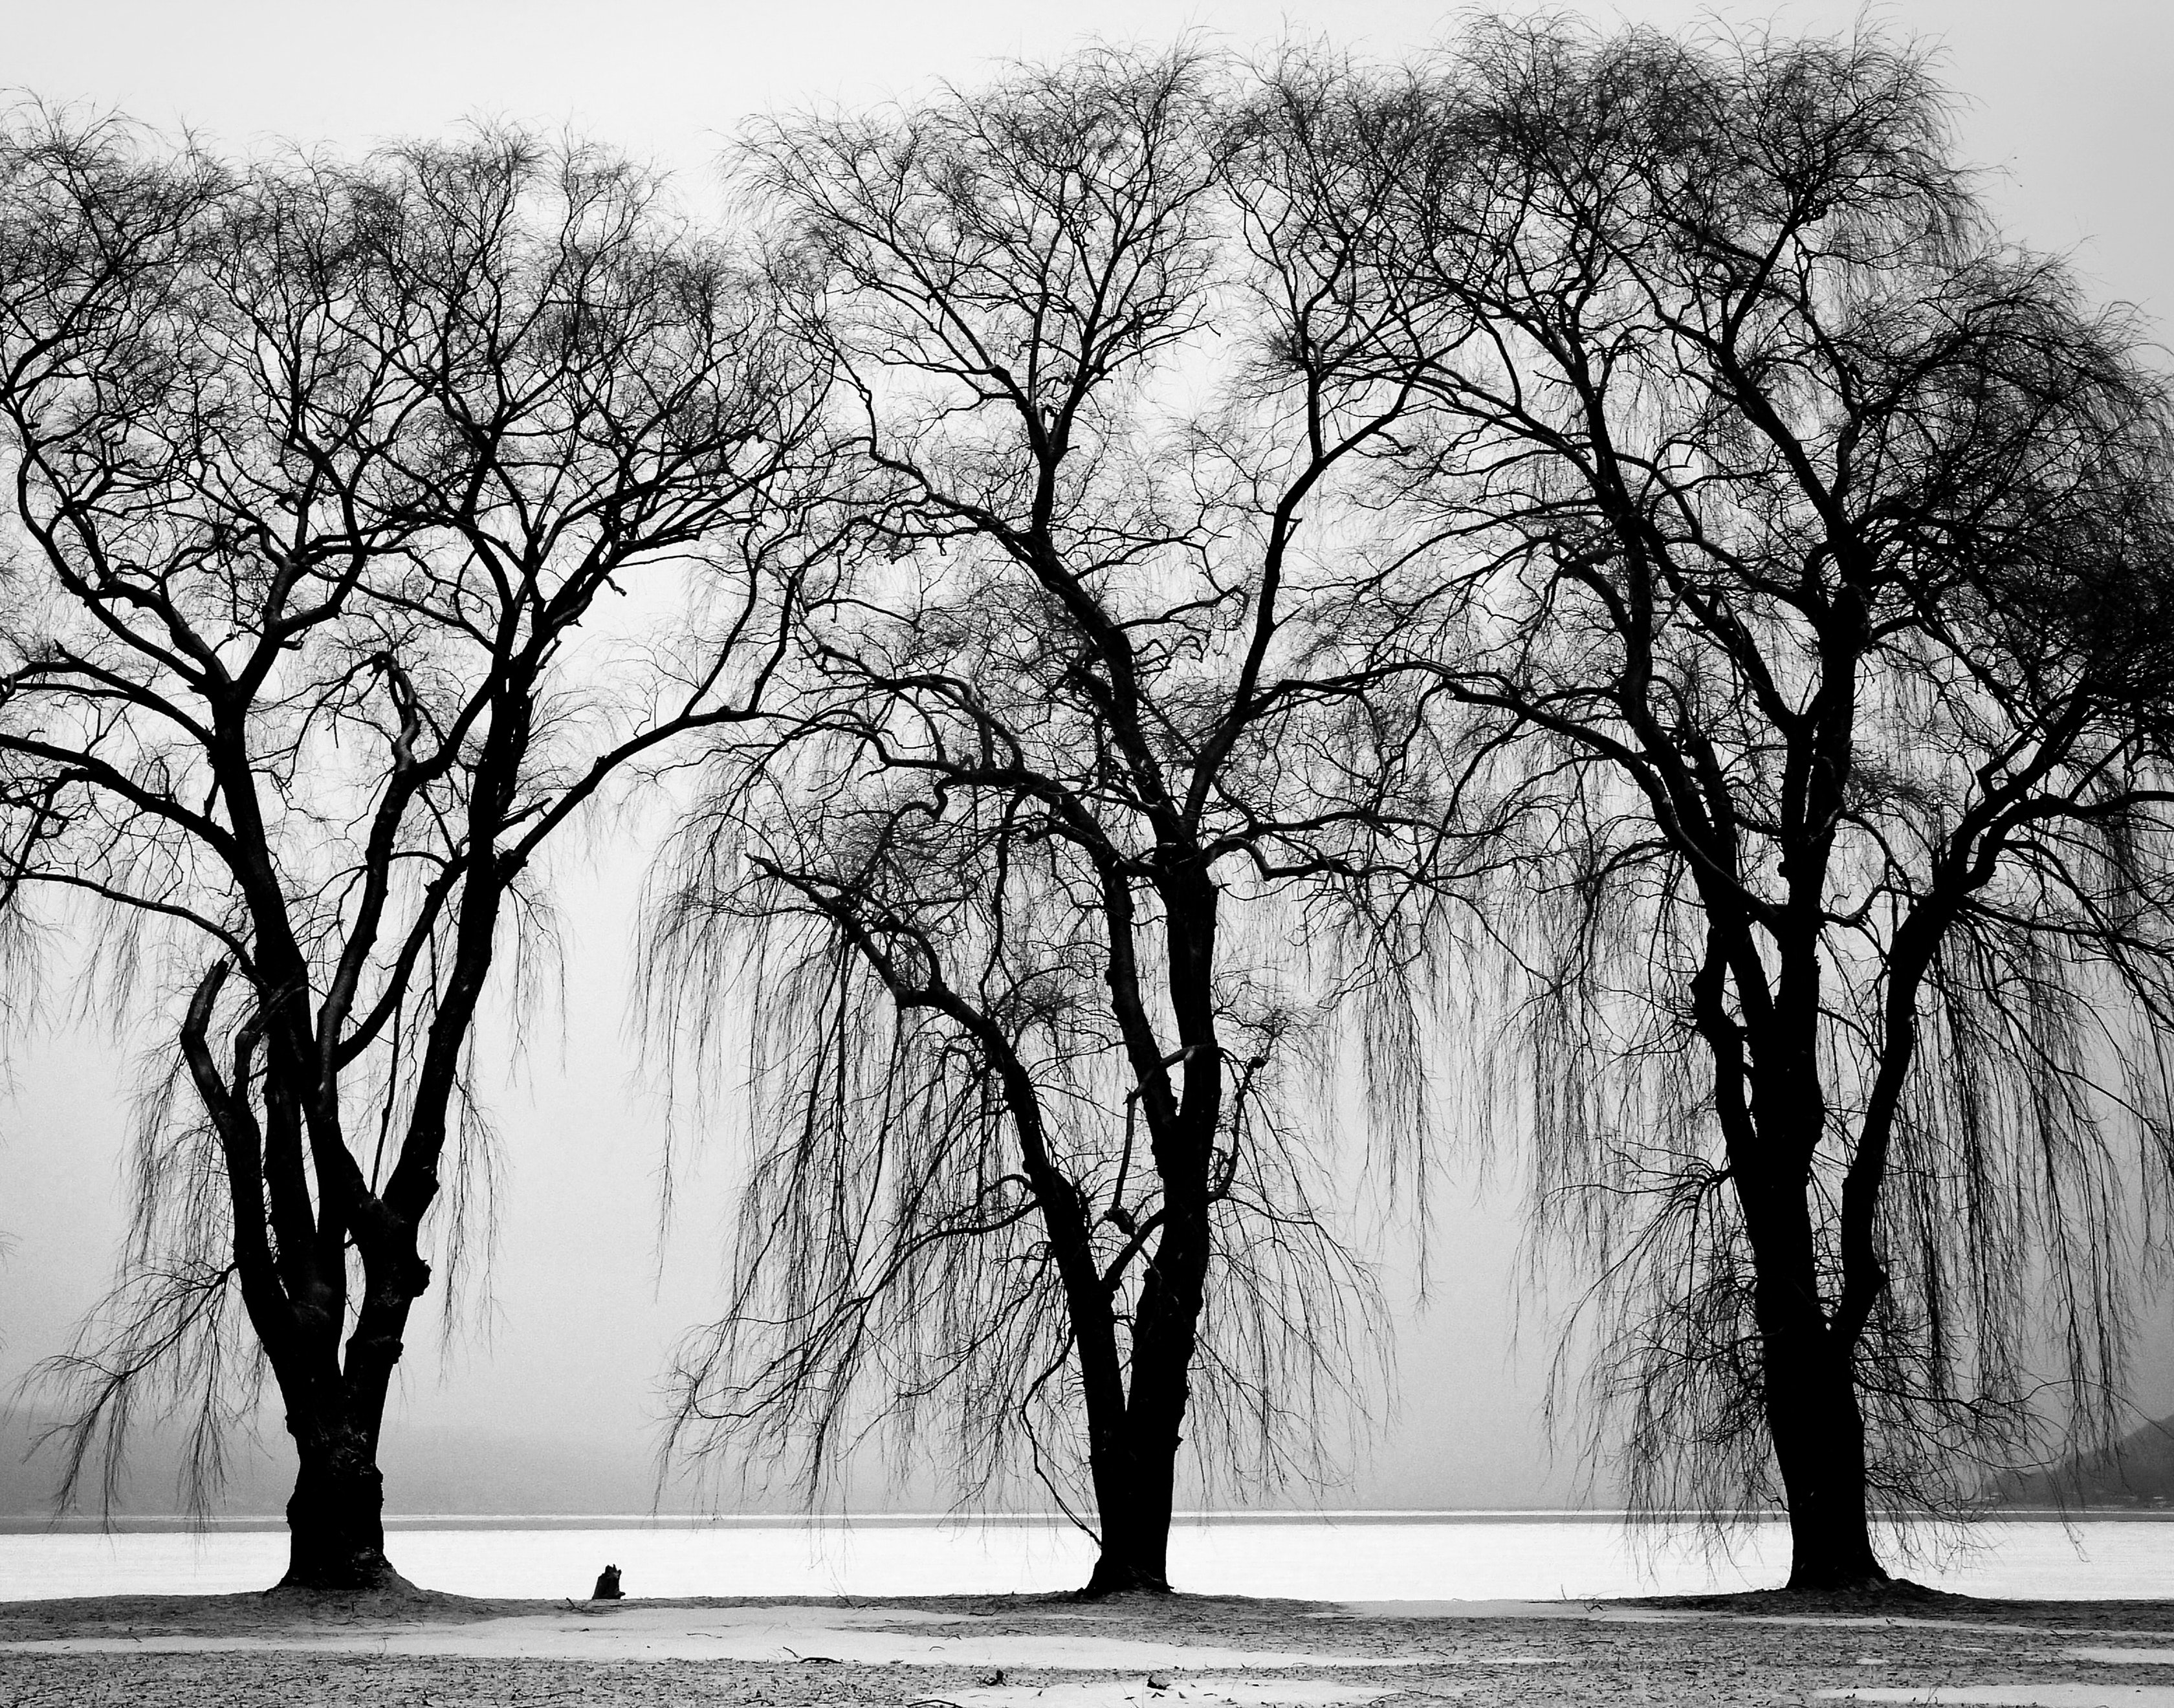 Black and white photograph of trees by a river